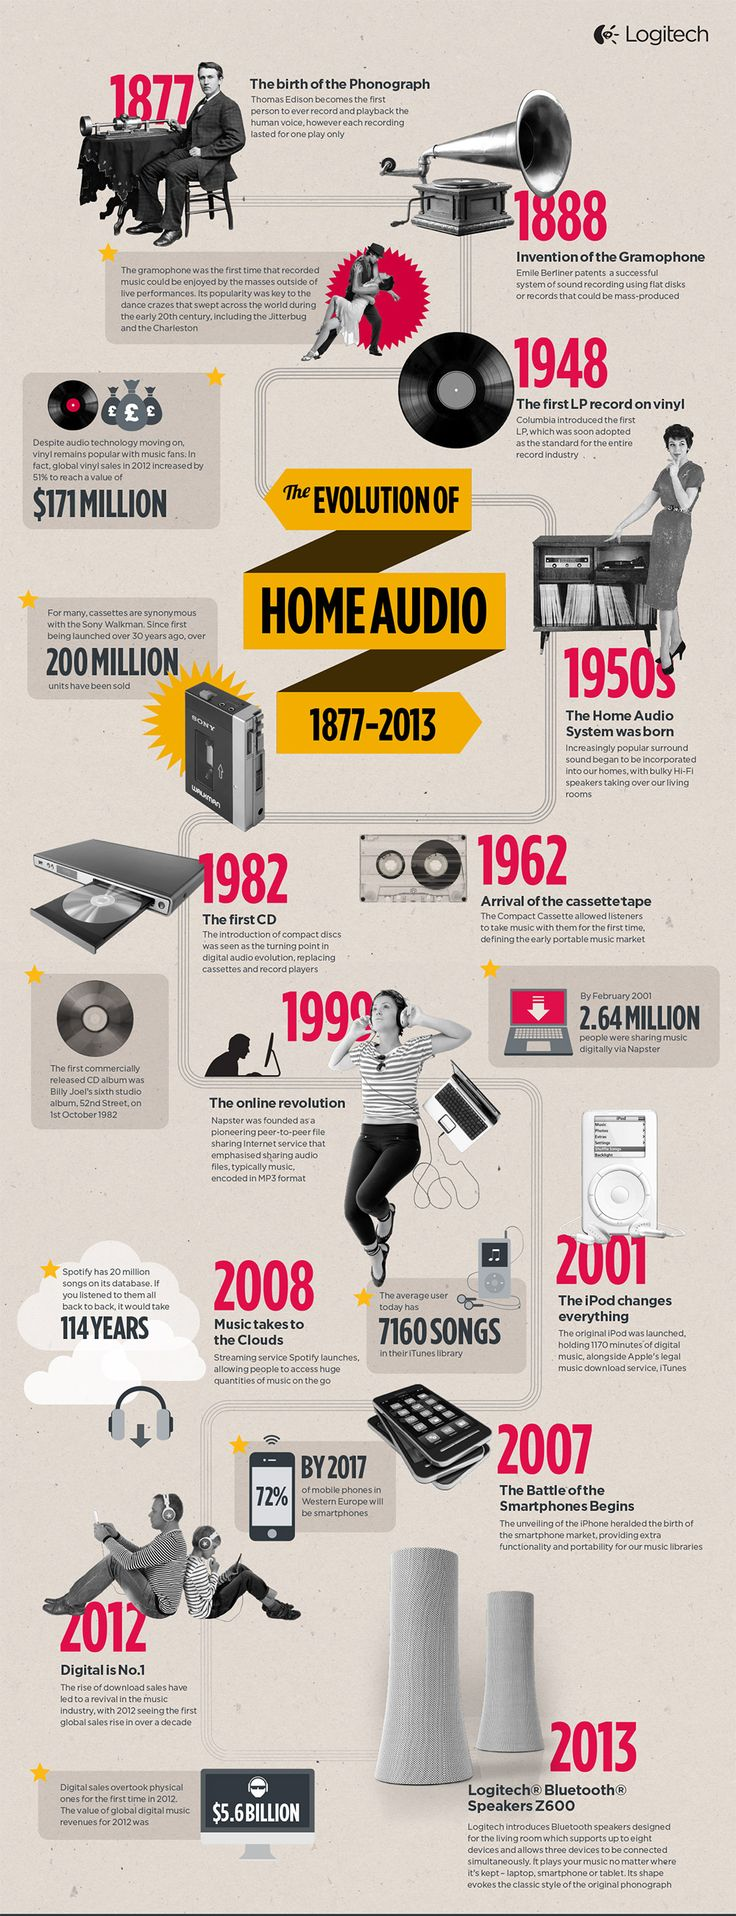 In celebration of our recently announced Logitech® Bluetooth® Speakers Z600, we created an infographic that takes a look at the journey of the devices we use to listen and share our favorite music, including fun facts, figures and key dates.